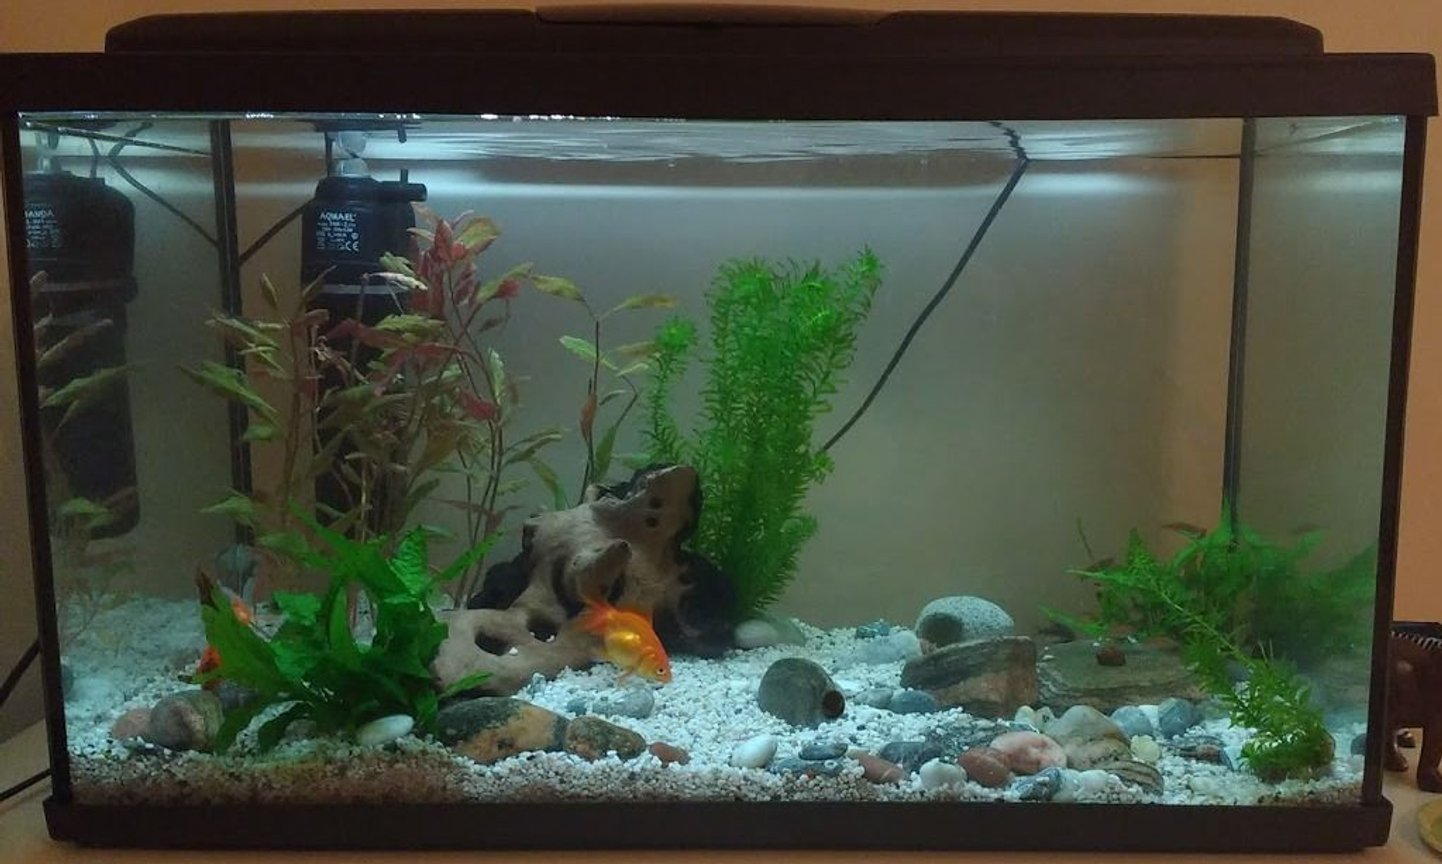 190 gallons planted tank (mostly live plants and fish) - 100 litre freshwater planted tank with bog wood, live plants and rocks. Current fish: Fancy Goldfish, hoplo catfish, glowlight danio, peppered corydora catfish, snails and shrimp. Thinking about adding a background and more plants, always keen to improve :)